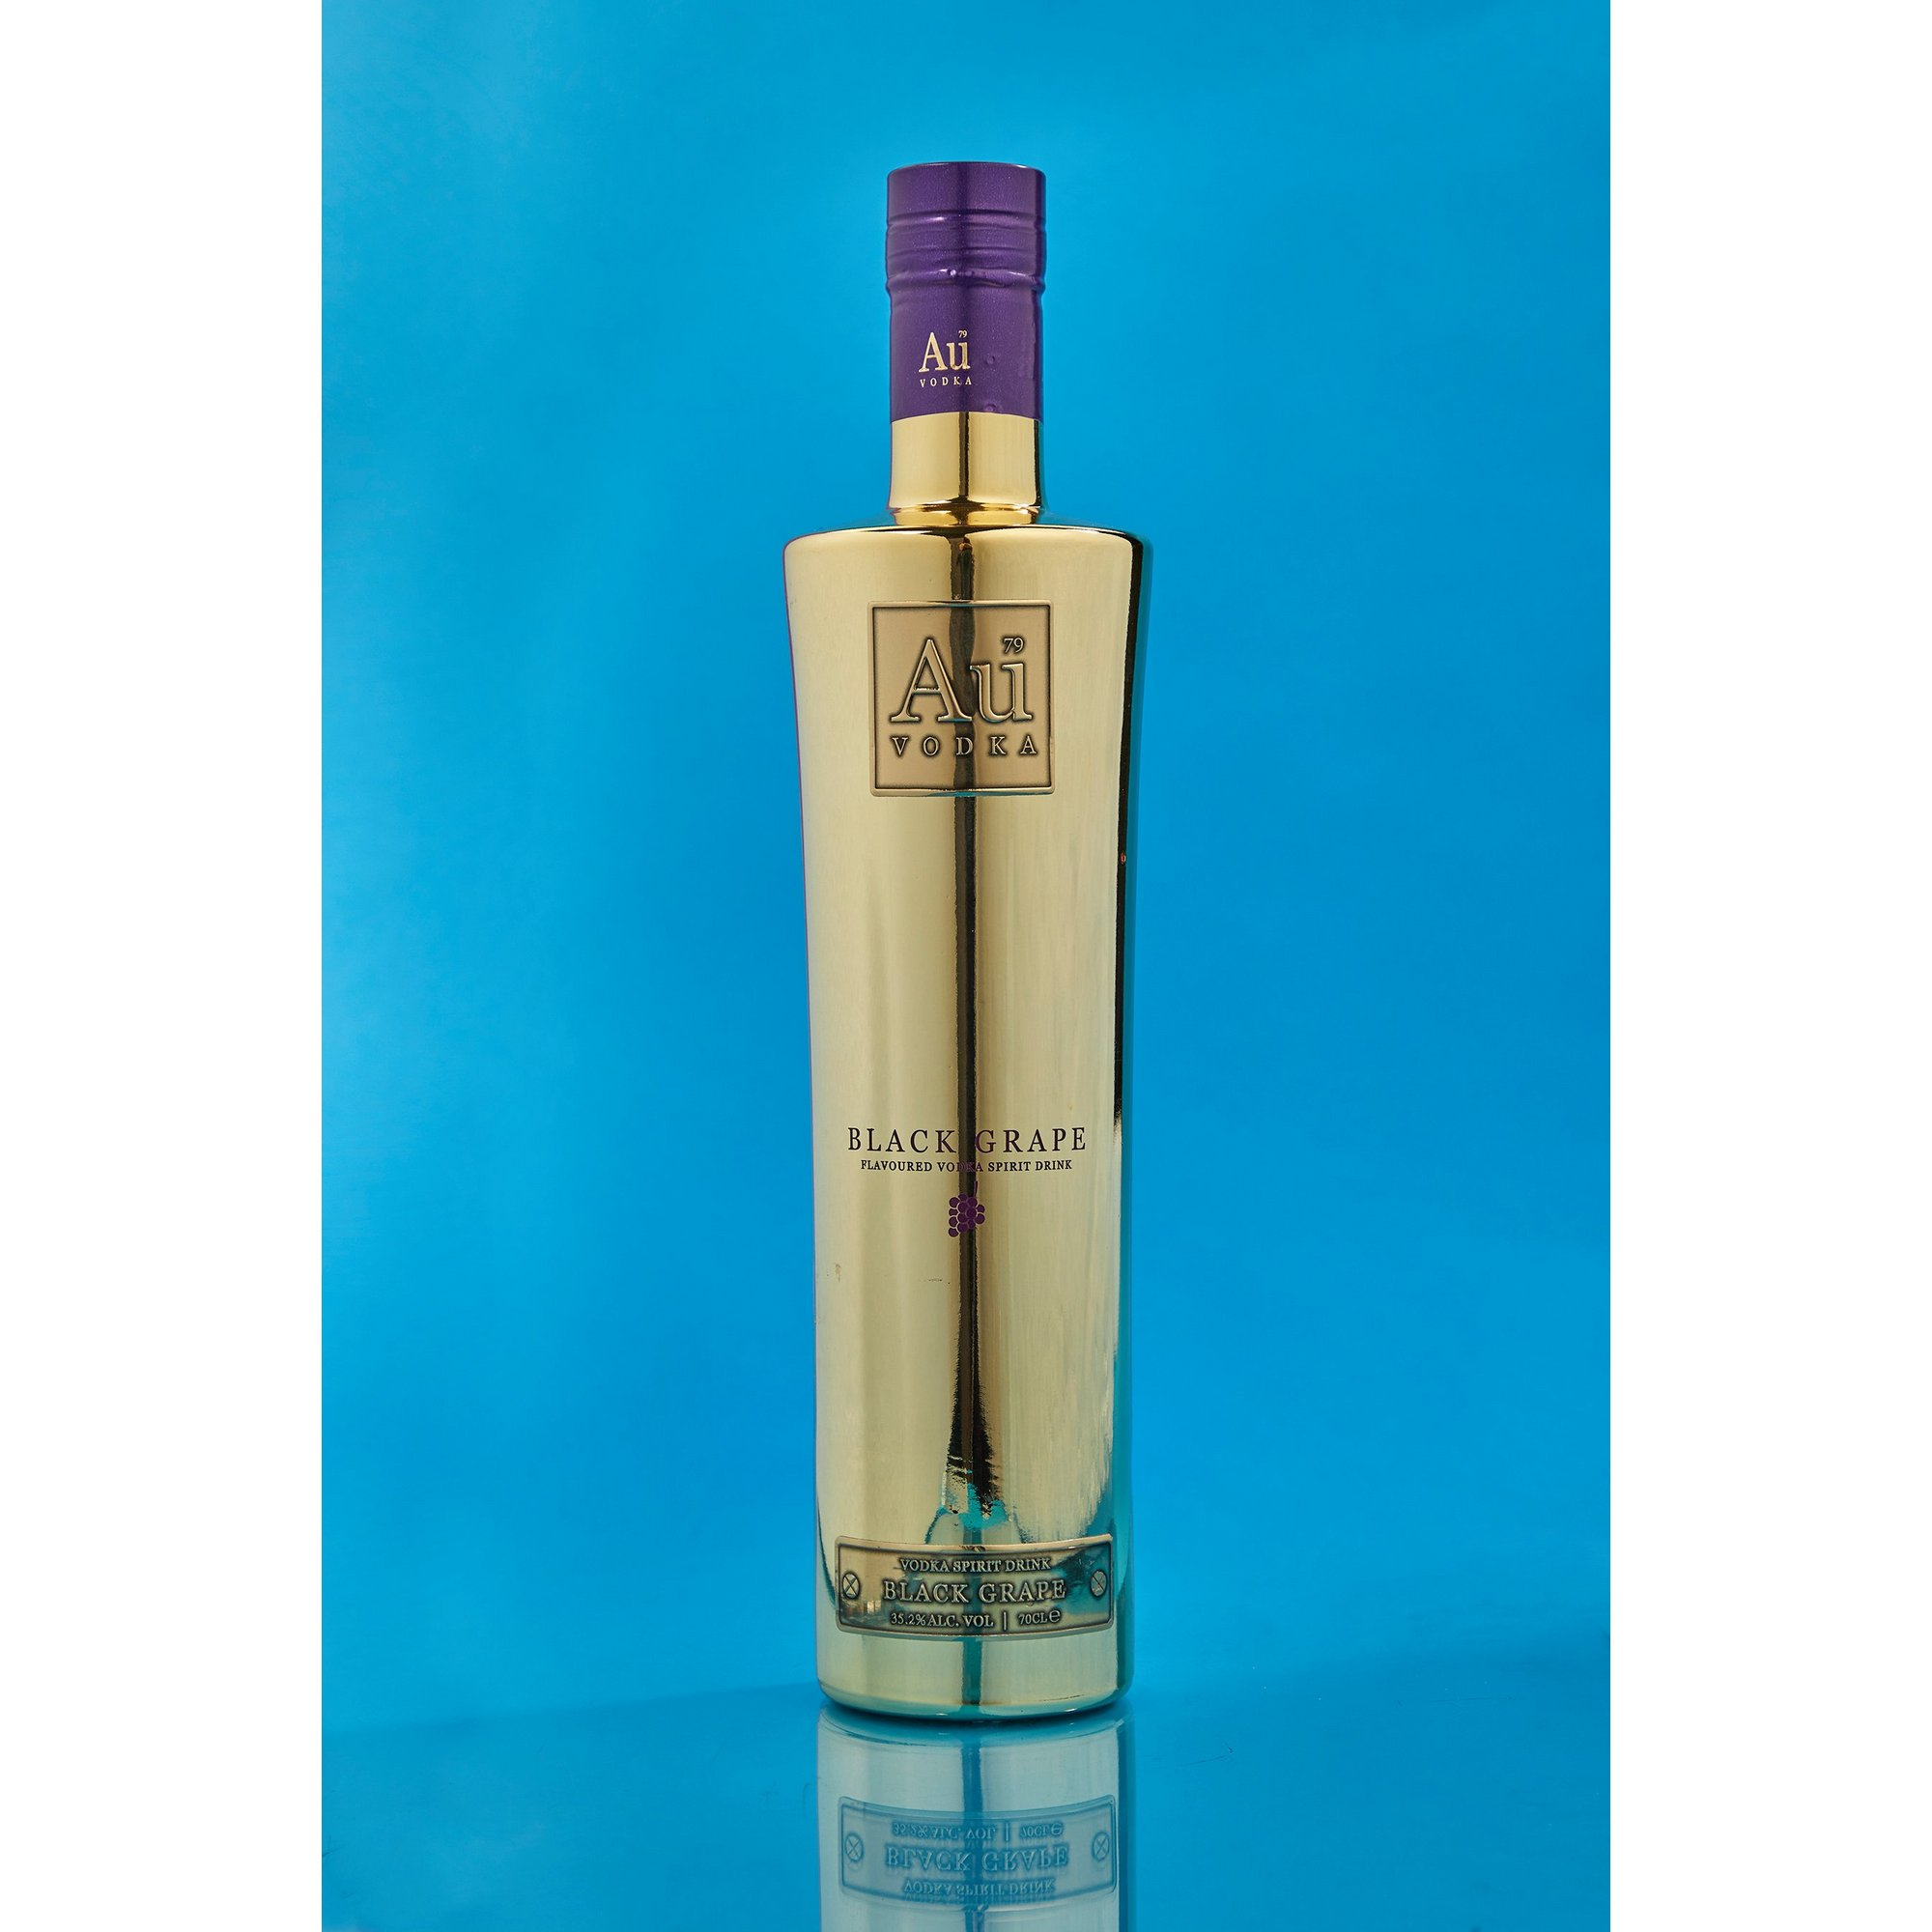 Image of Au Vodka Black Grape 70cl